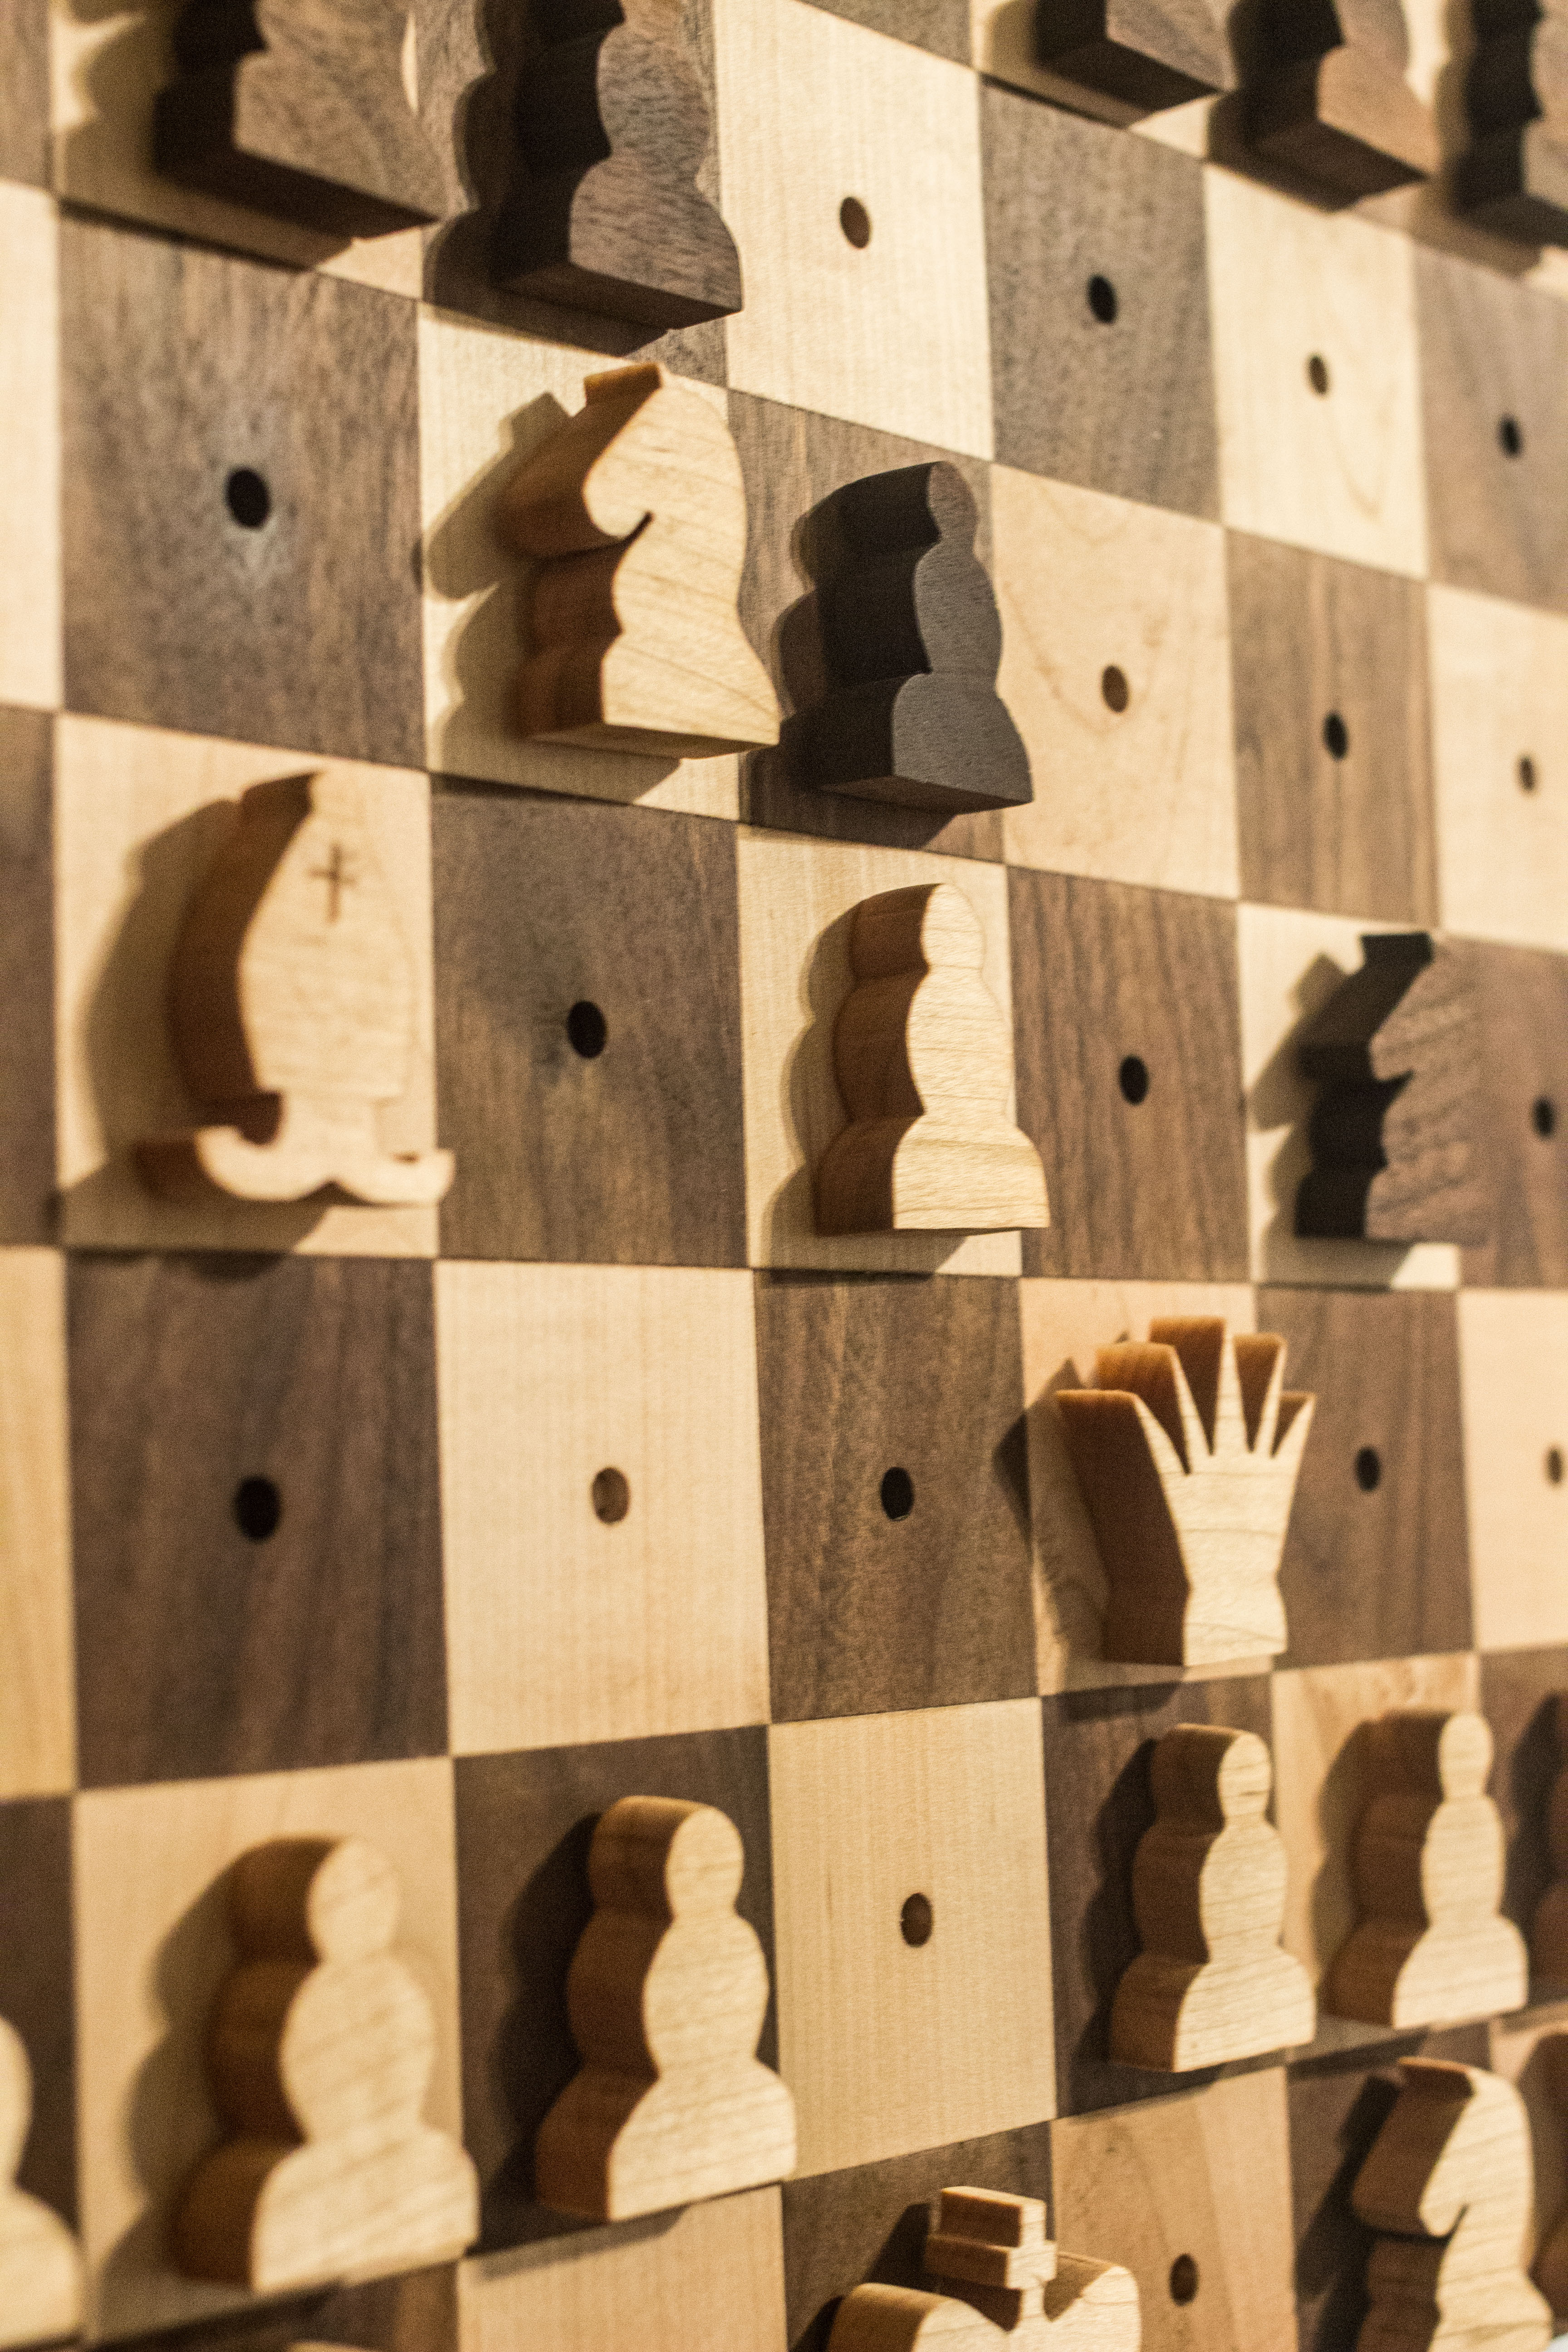 Diy Wood Chess Board Wall Hanging Chess Pieces T R I A L And E R R O R